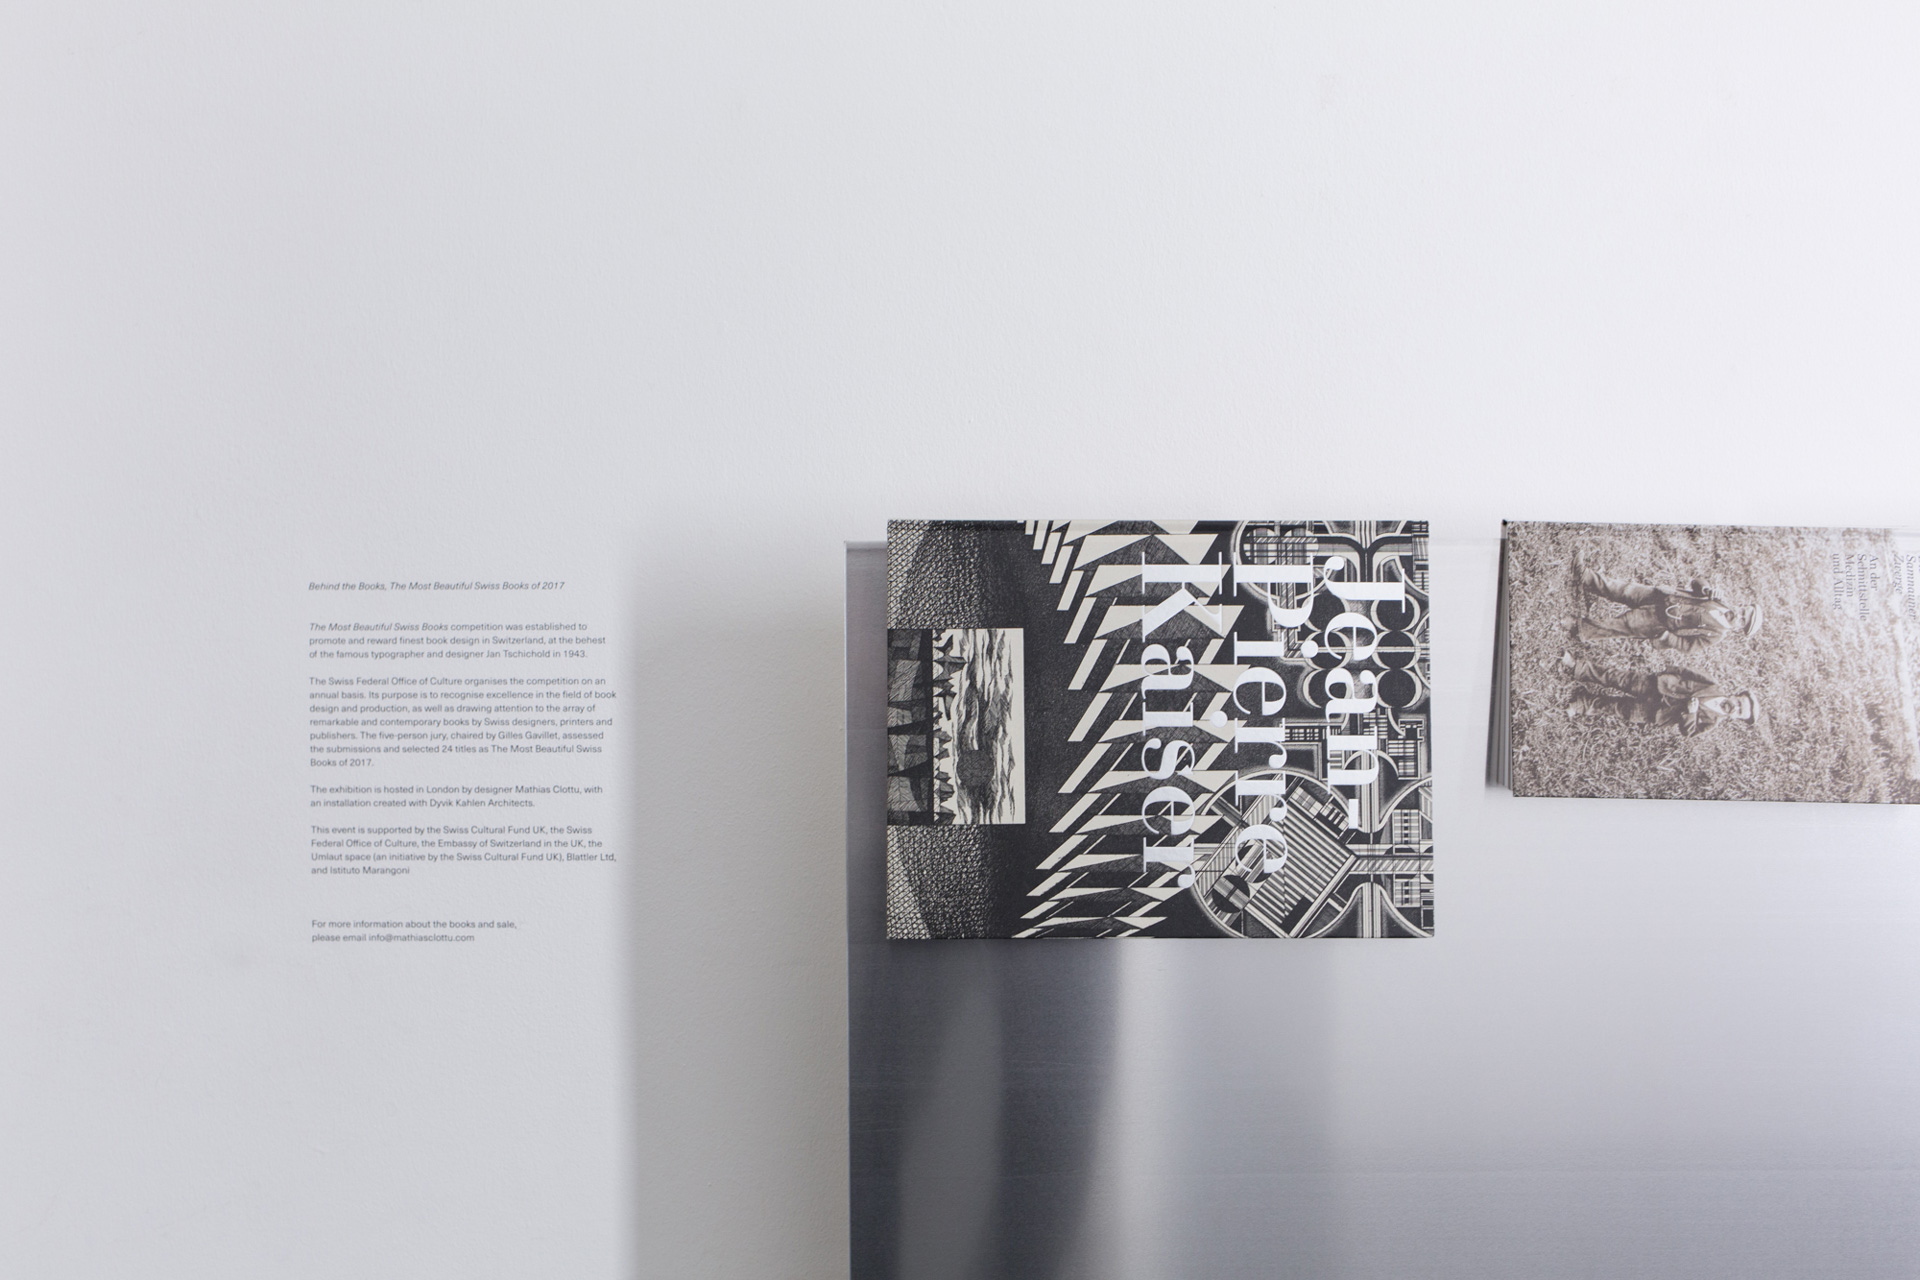 The Most Beautiful Swiss Books 2018 exhibition was one not to be missed. Click to find out more about how we could help with the exhibition.